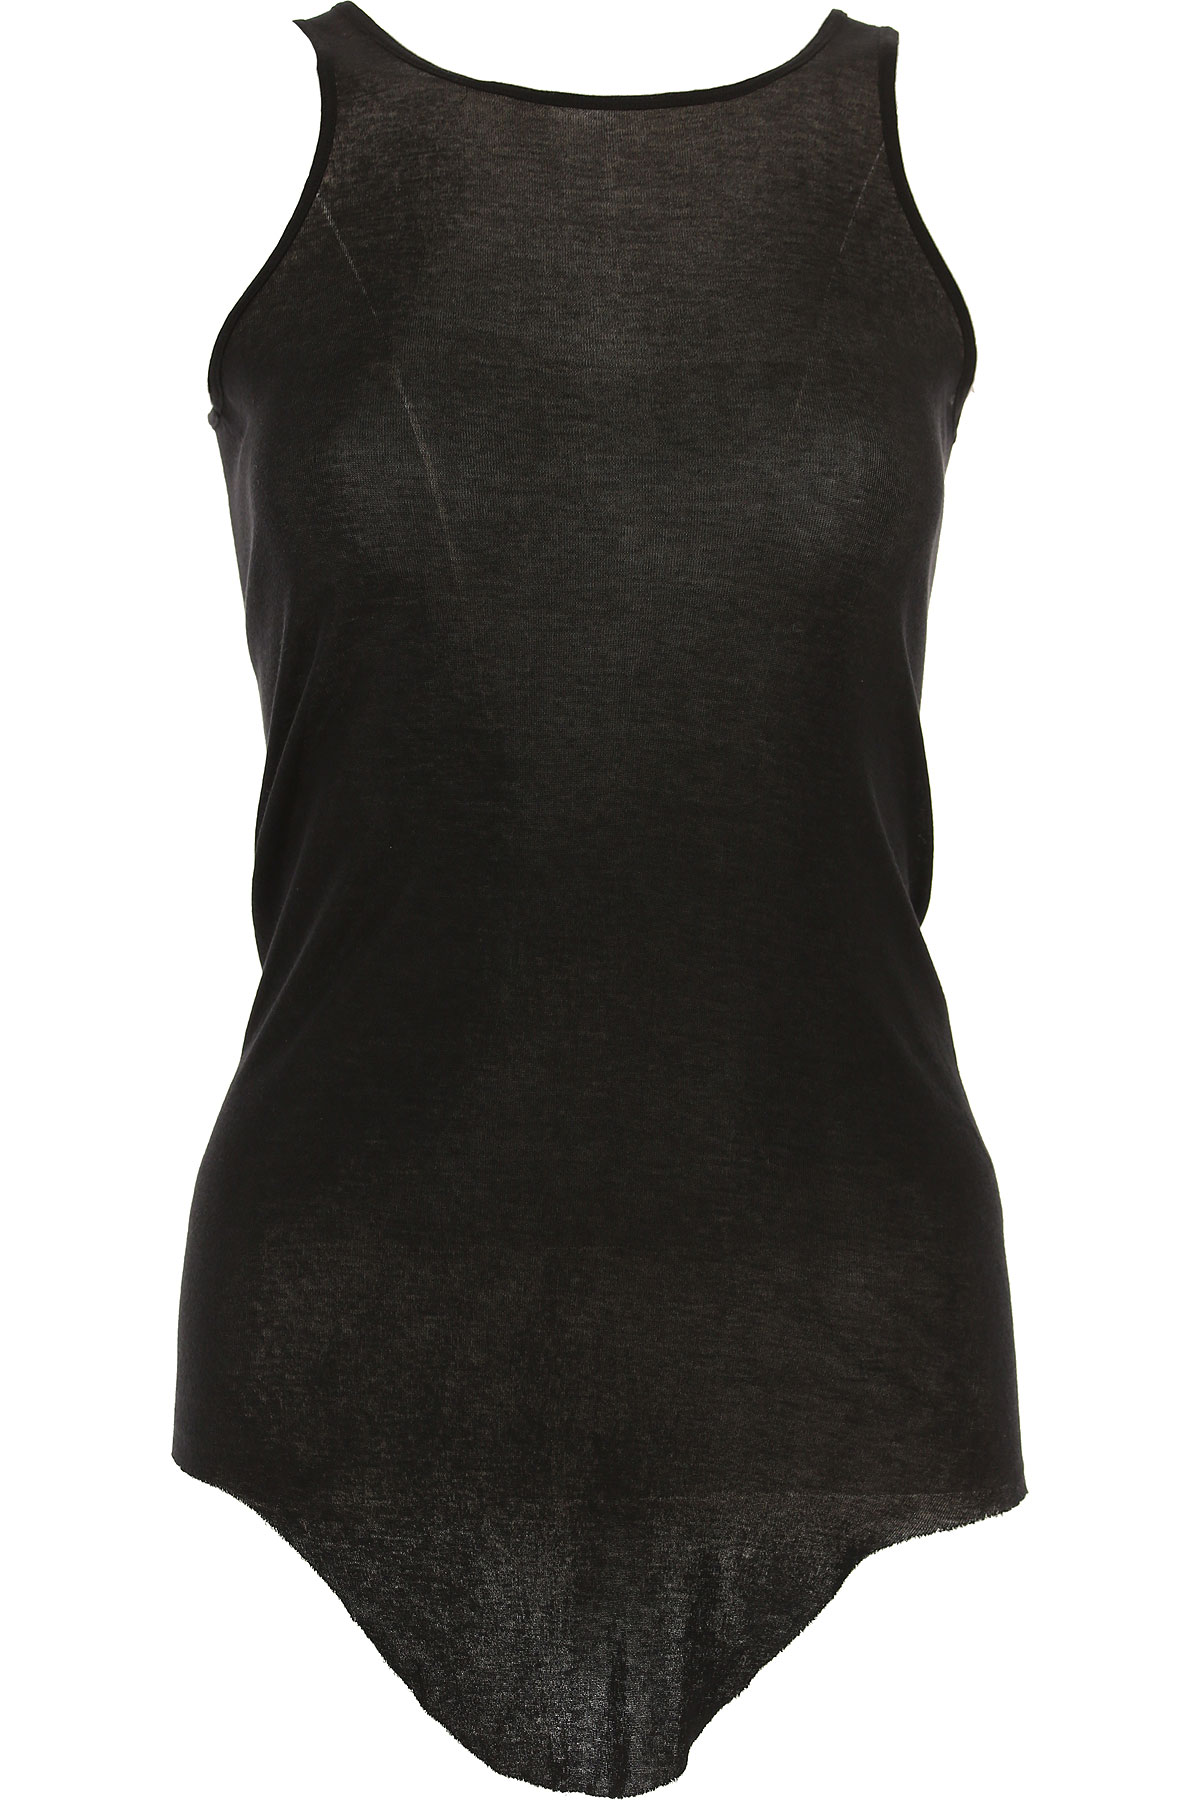 Image of Rick Owens Tank Top for Women On Sale, Black, Cotton, 2017, 4 6 8